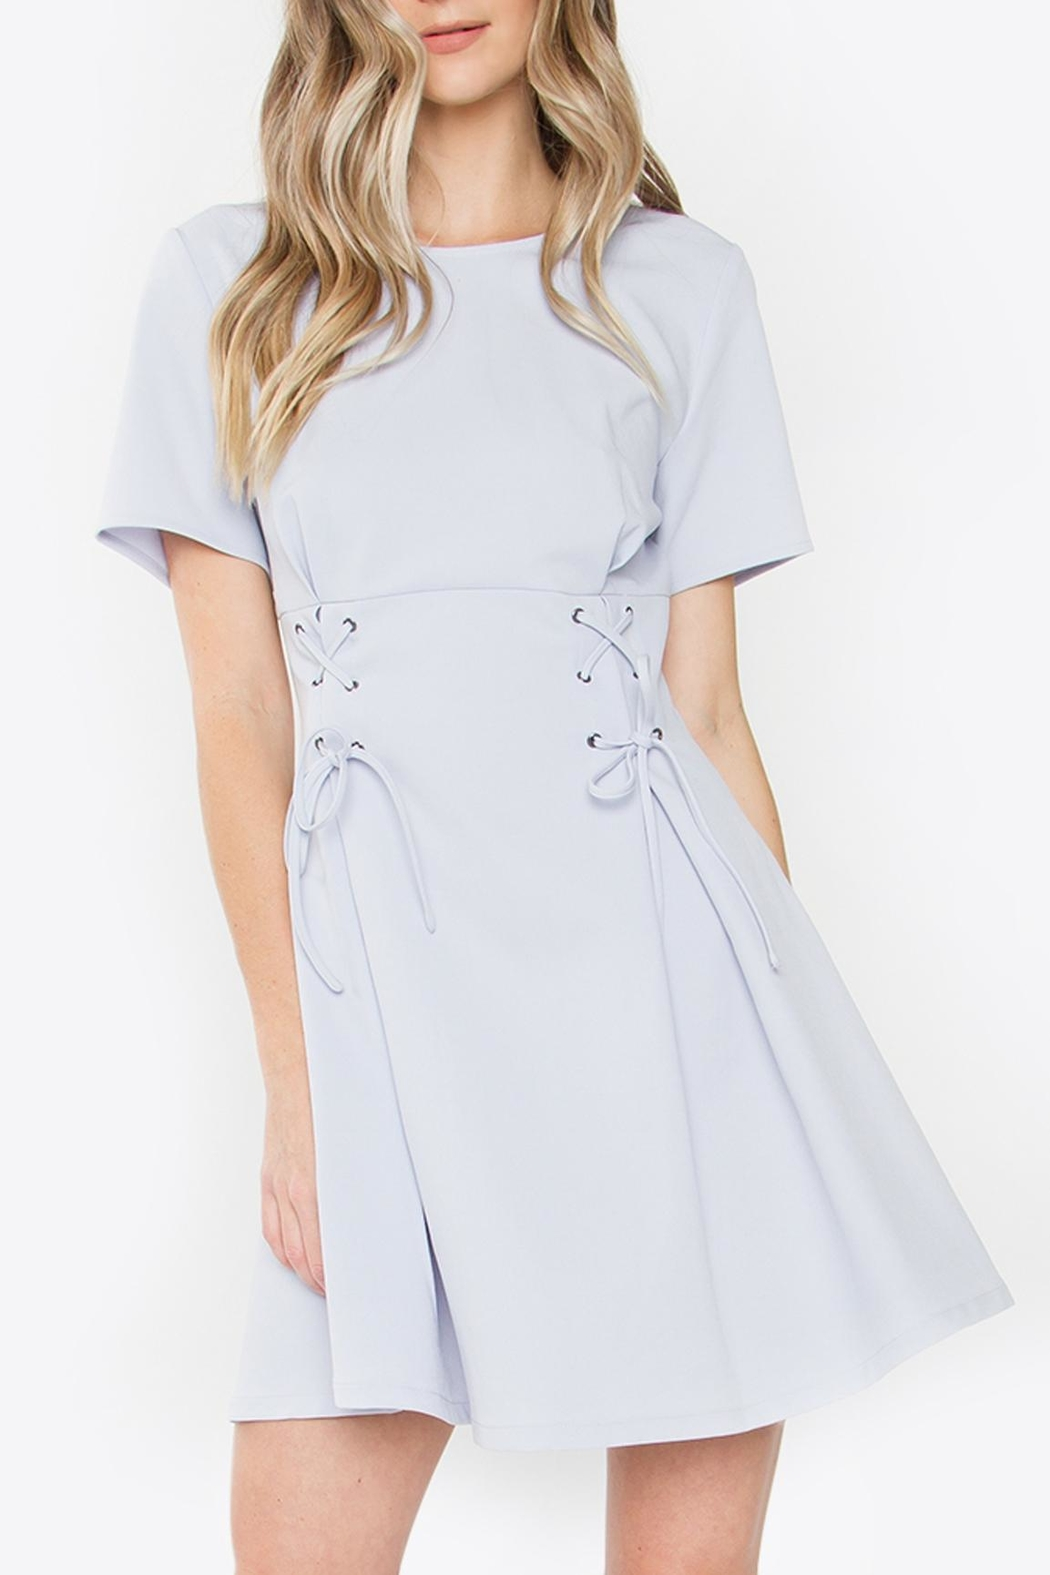 Sugarlips Lace-Up Fit-And-Flare Dress - Main Image